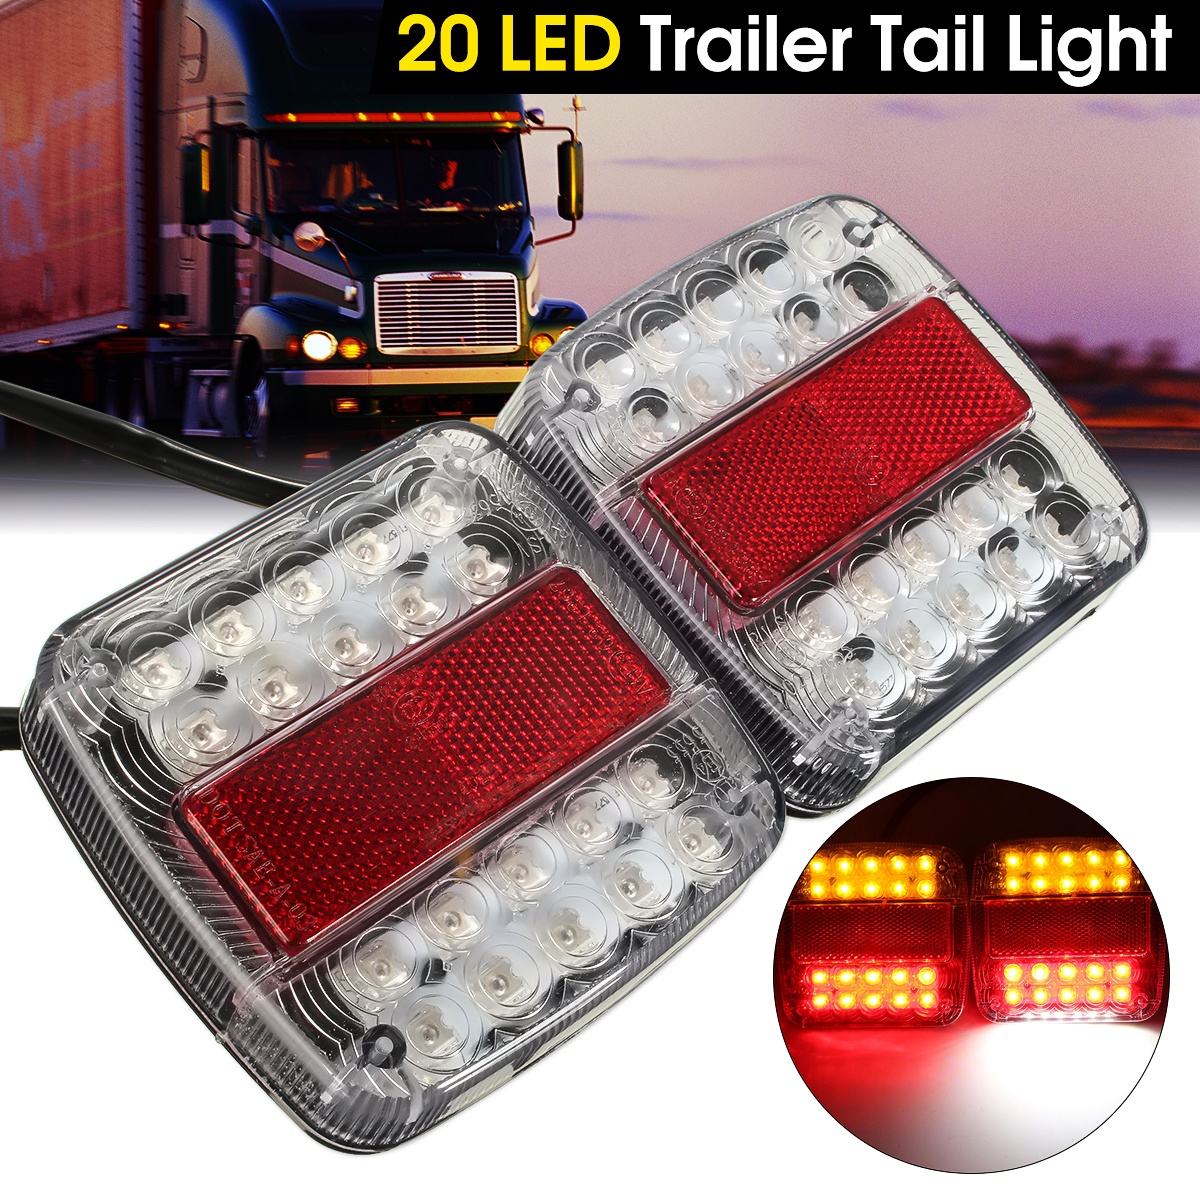 2x 12V 26 LED Taillight Turn Signal Light Rear Brake Stop Light Number License Plate Lamp For Car Truck Trailer E-Marked winter baby rompers bear girls boys clothes hooded baby boys rompers cotton padded jumpsuits infants kids winter clothes